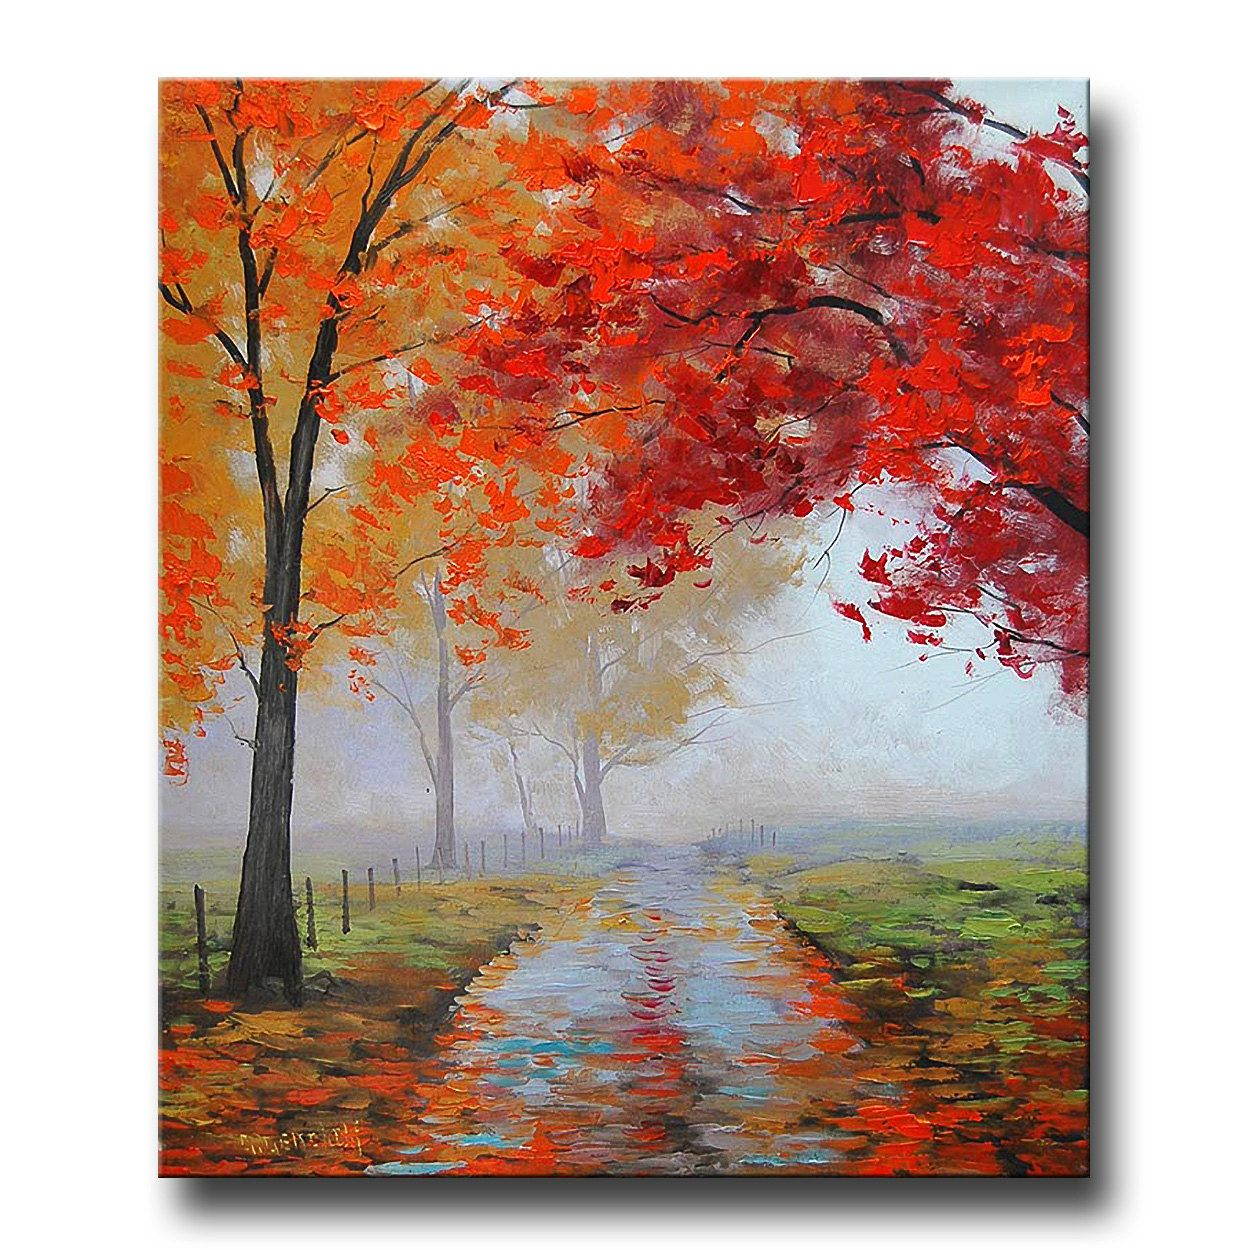 Realistic Oil Painting Fall Trees Impressionism Misty Road Art Deco Pinturas Hermosas Pinturas Abstractas Pinturas